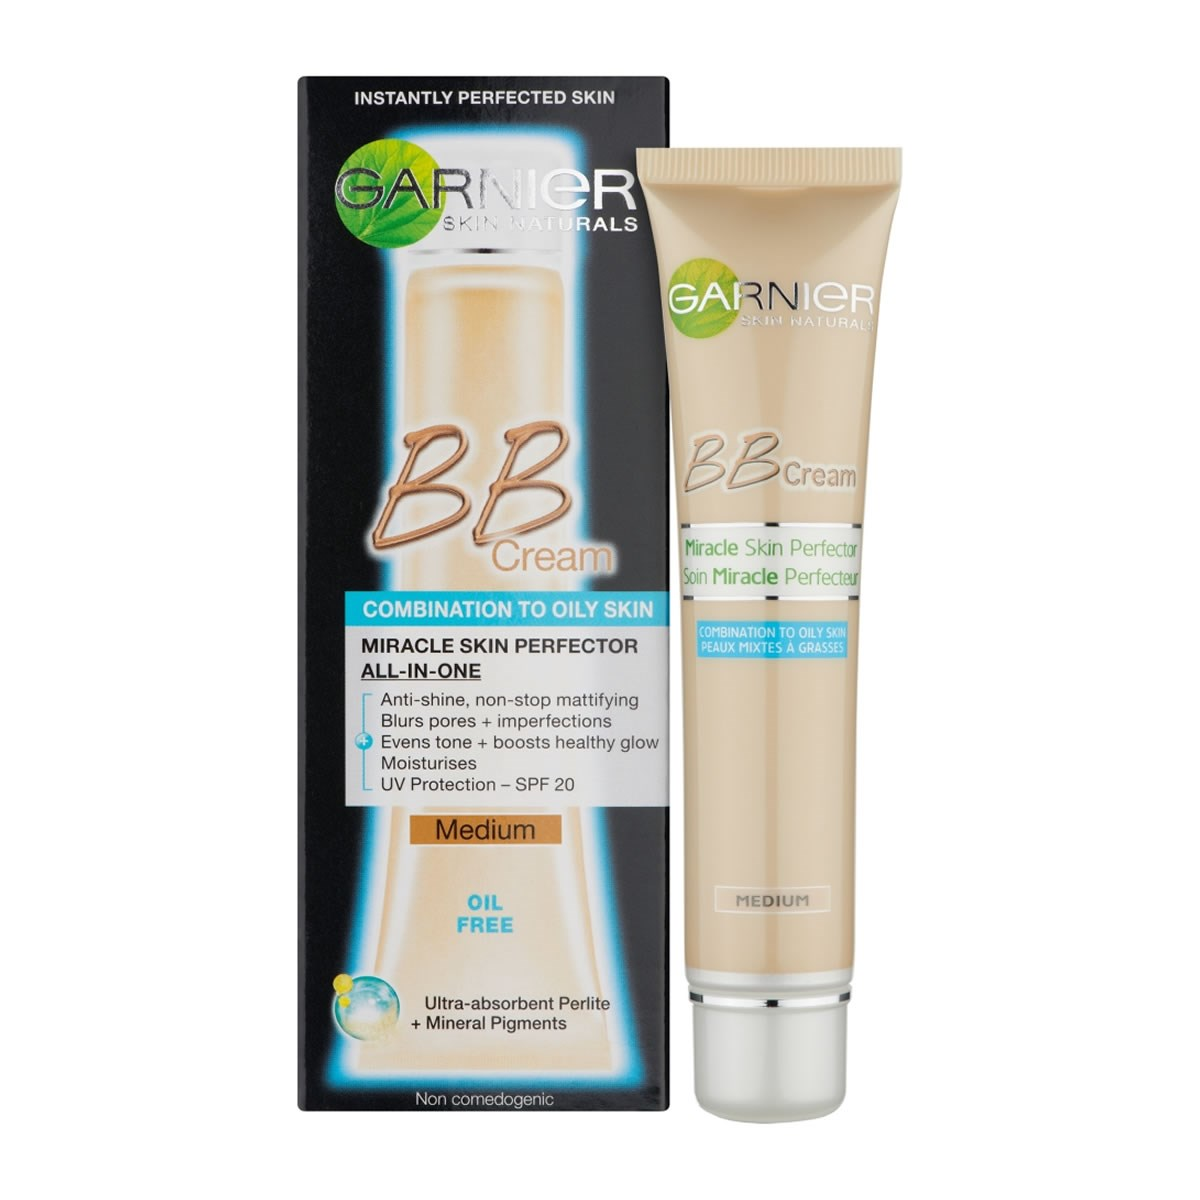 Garnier BB Cream Miracle Skin Perfector For Combination To Oily Skin - Medium